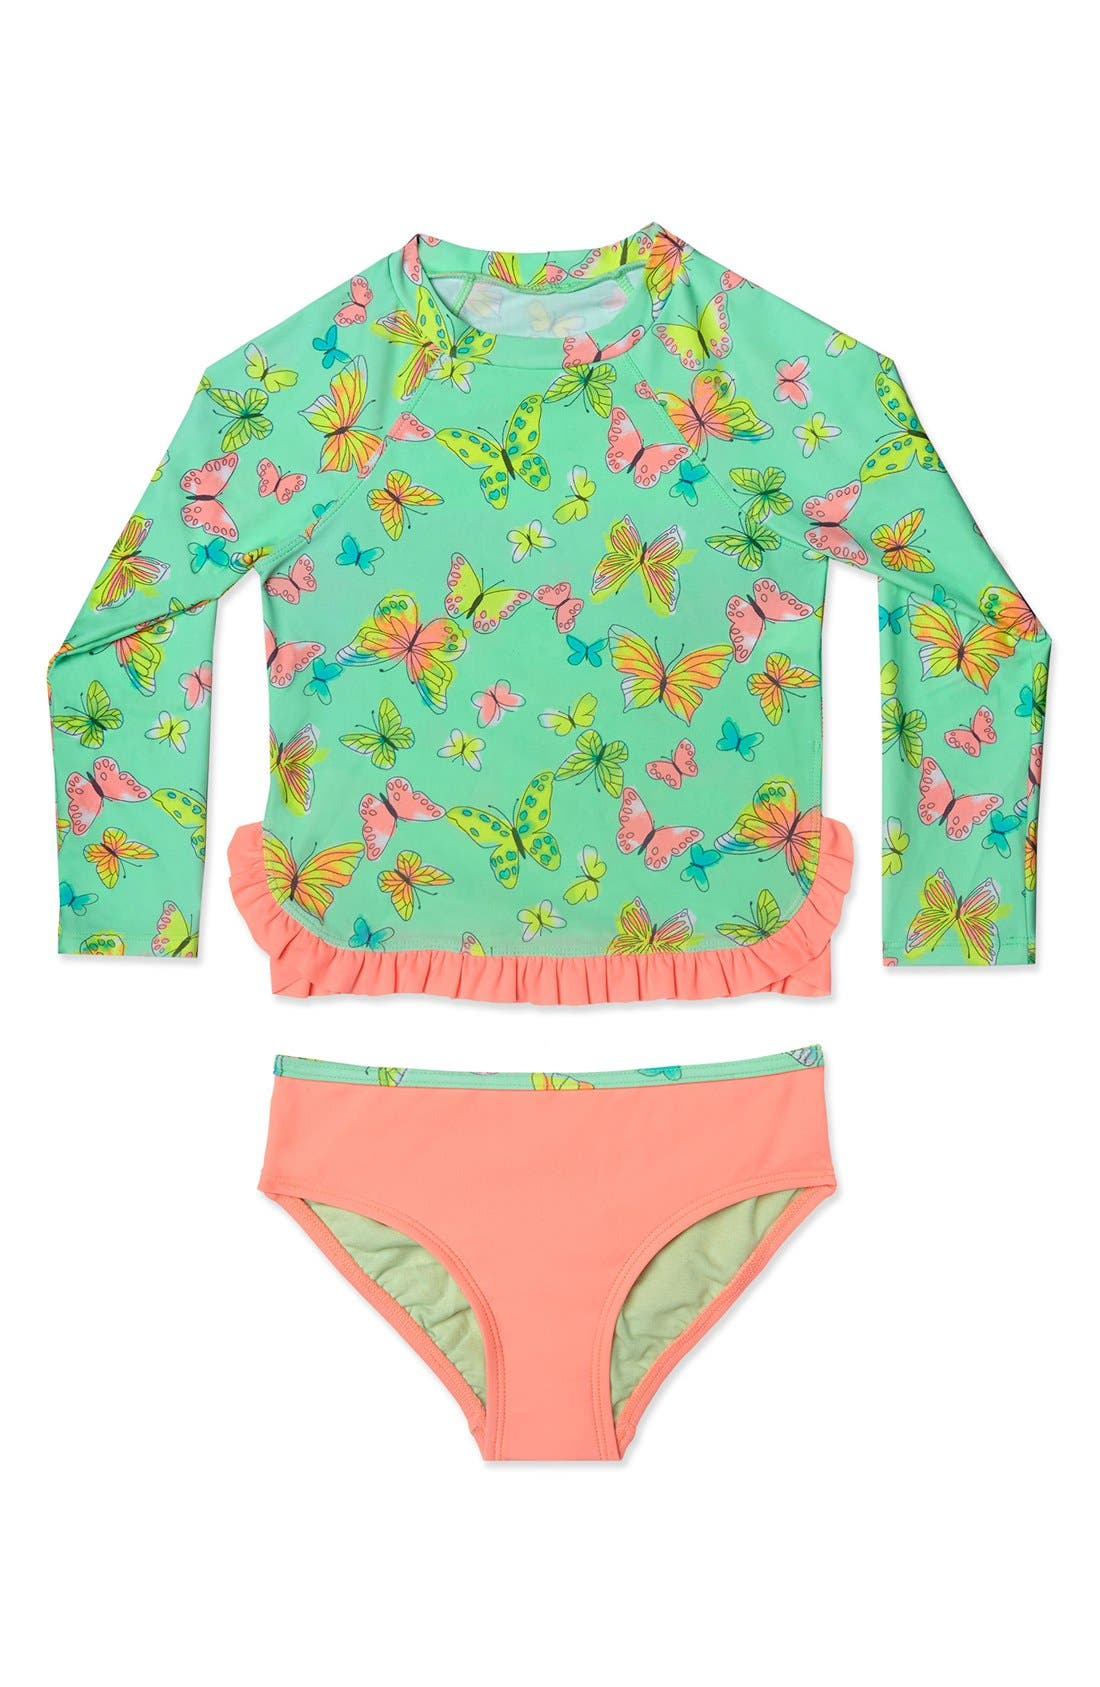 'Butterfly' Two-Piece Rashguard Swimsuit,                         Main,                         color, Mint